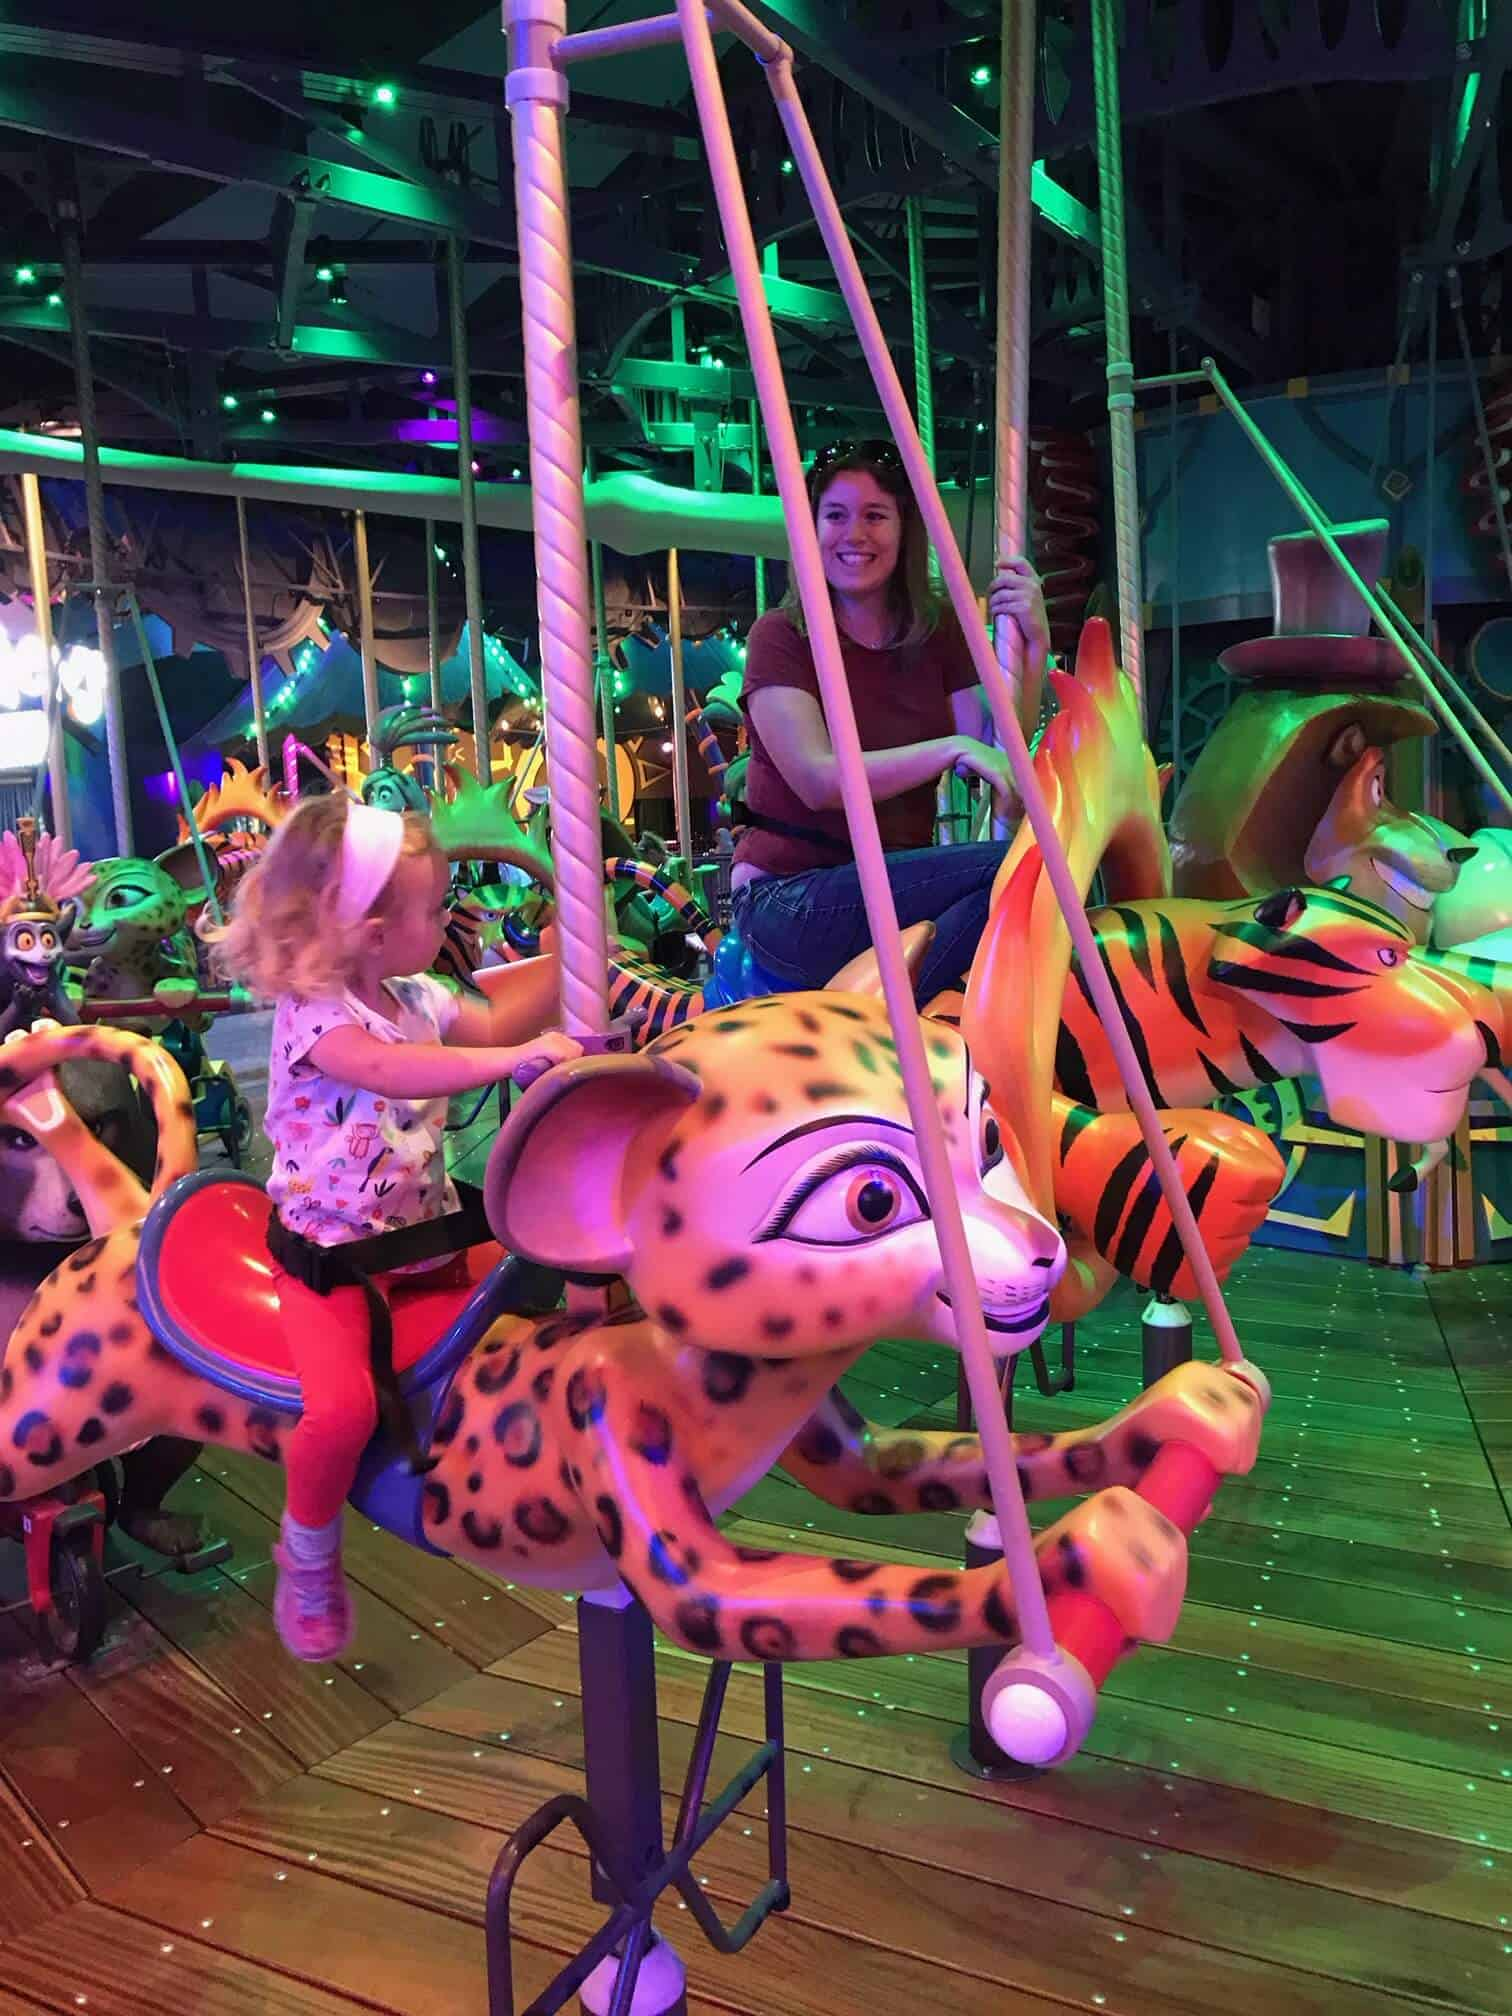 Motiongate dubai with toddler and baby - one of the best indoor things to do in Dubai